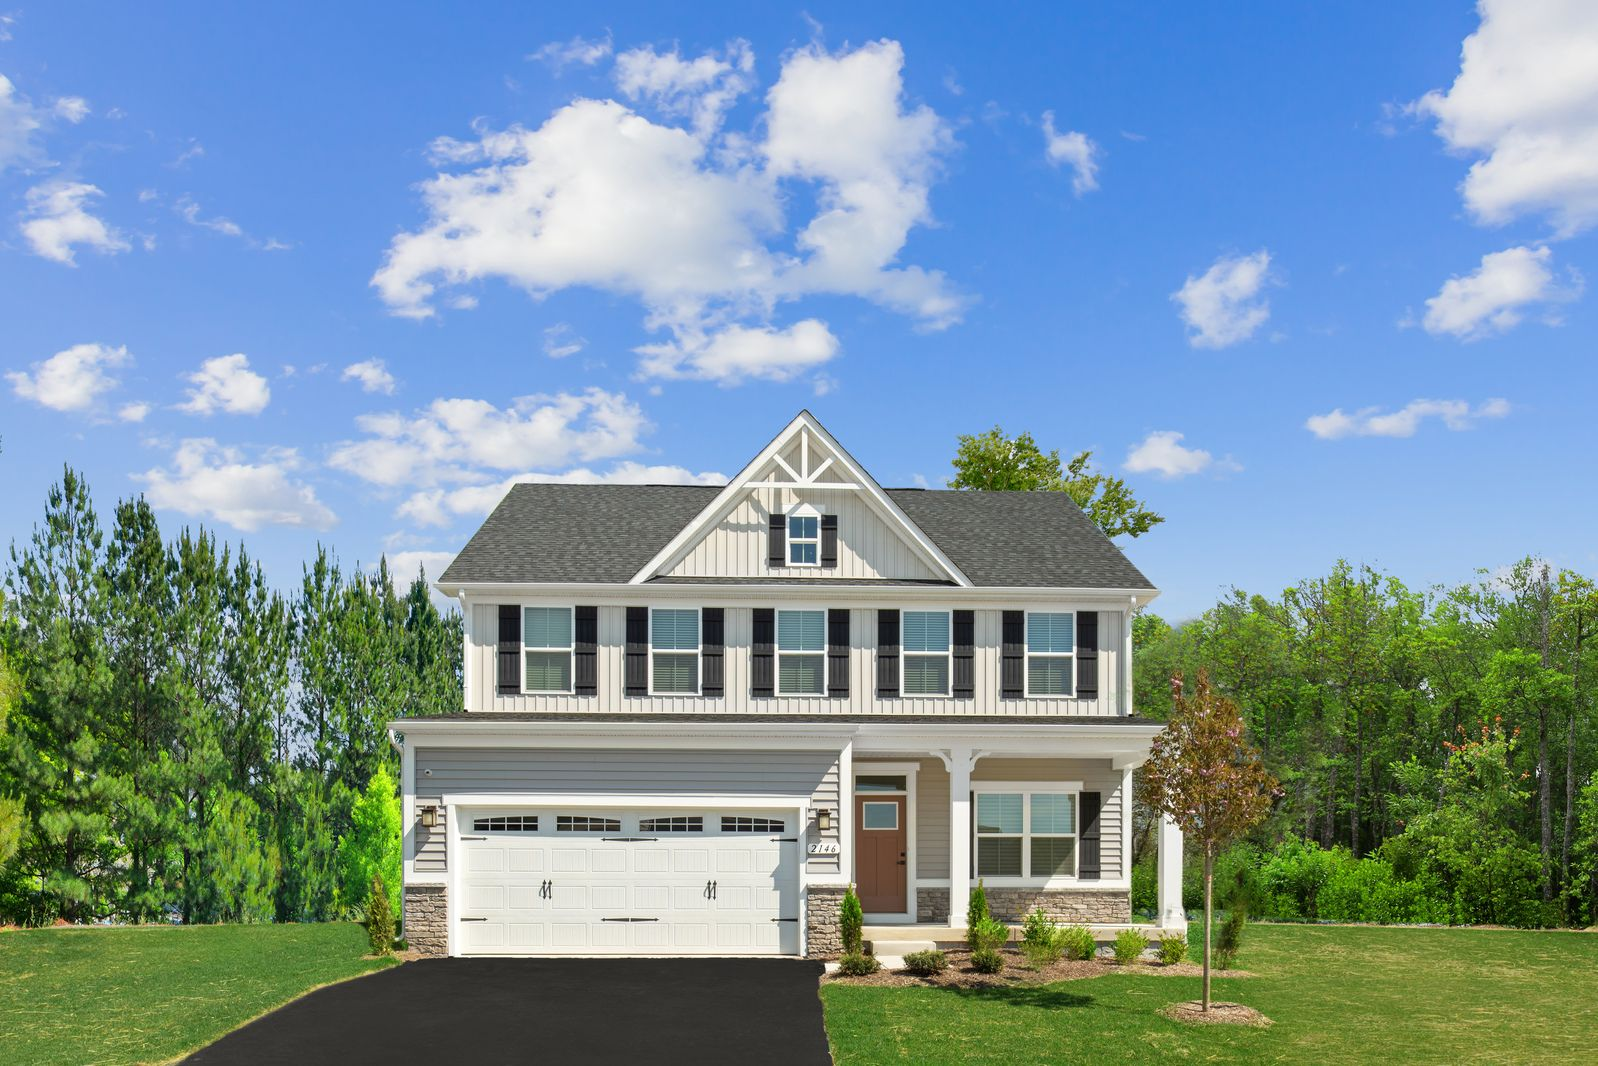 New Single Family Homes In Lakemoors Highly Desirable School District:The best value new homes in a premier Lake County location close to Rt. 120 and Rt. 12. No SSA tax, from the upper $200s.Click here to schedule your one-on-one appointment today!